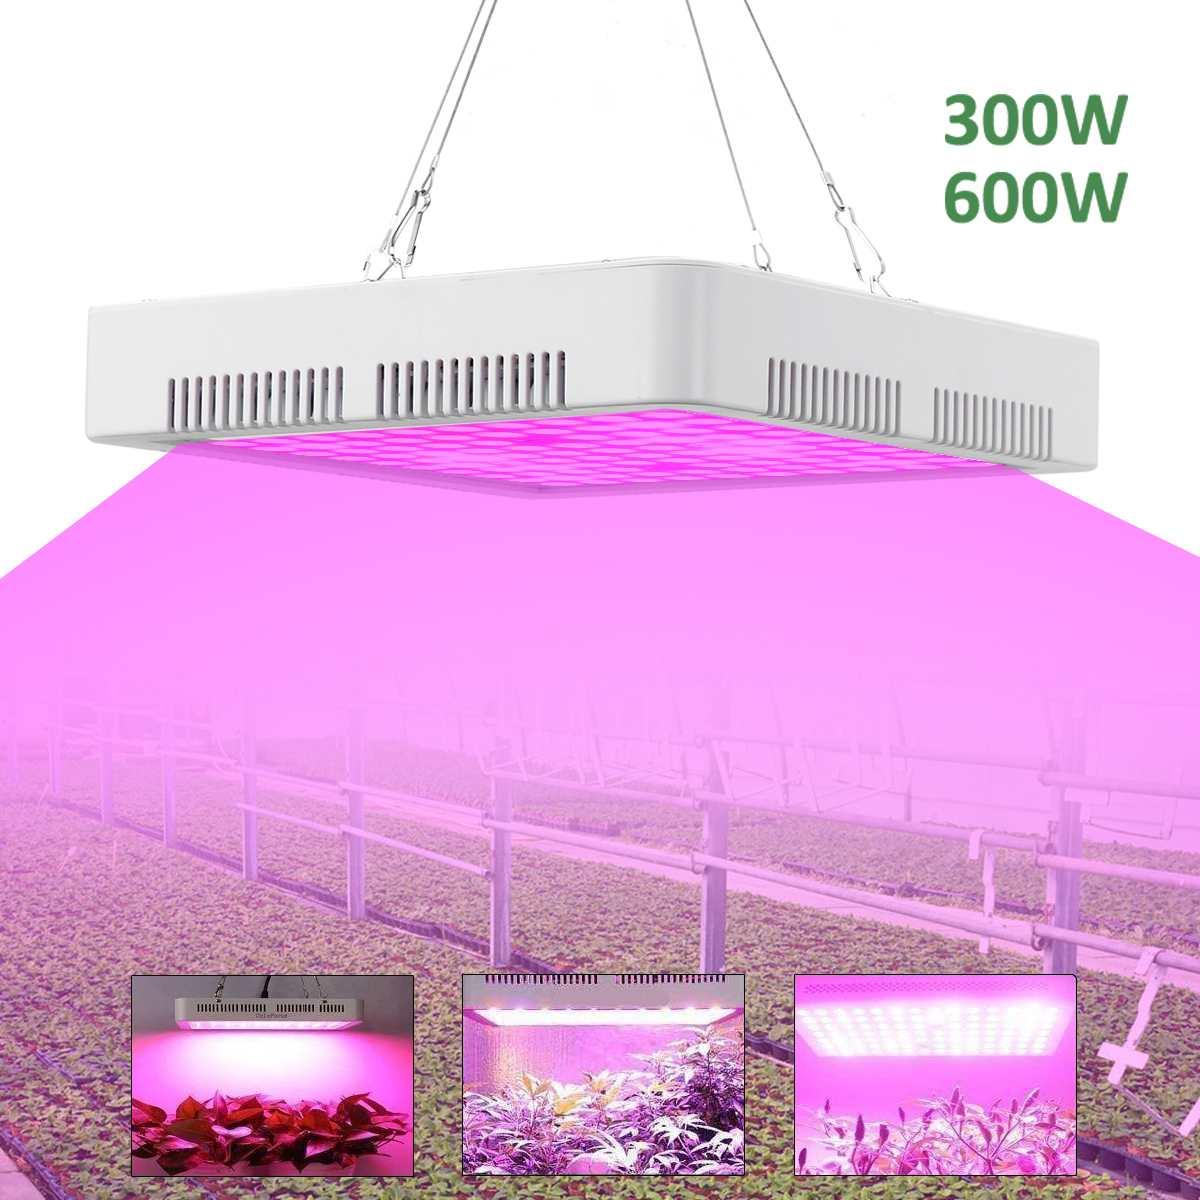 300W 600W Full Spectrum LED Plant Grow Light Lamps For Flower Plant Veg Hydroponics Grow/Bloom Tent Indoor Heat Lamp For Plants